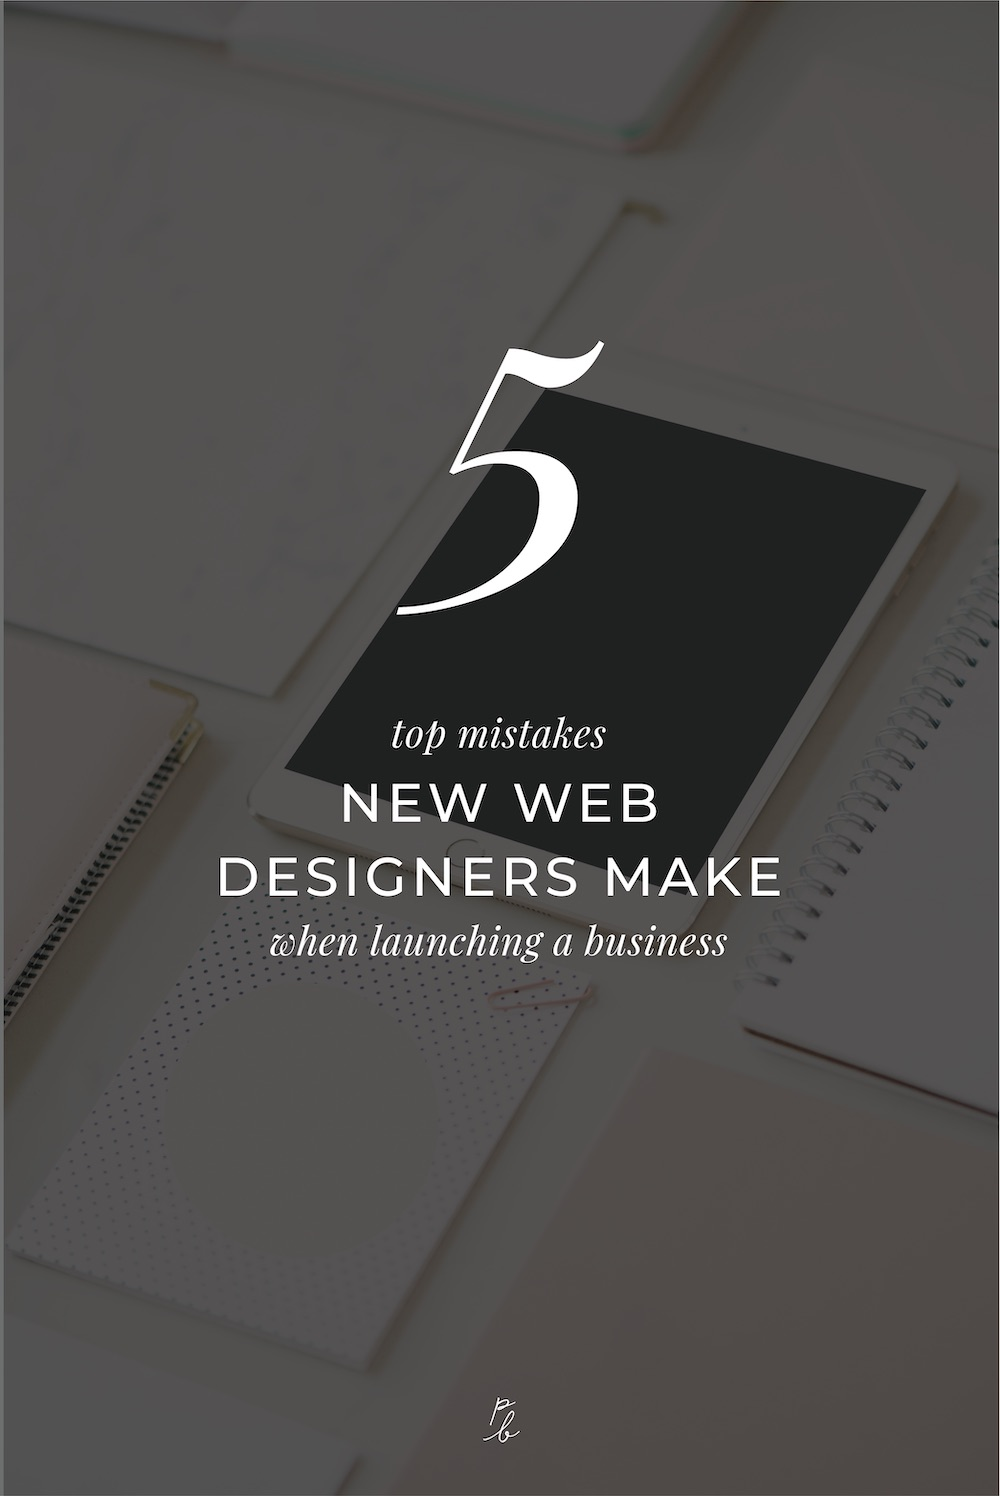 2-5 top mistakes new web designers make when launching a business.jpg